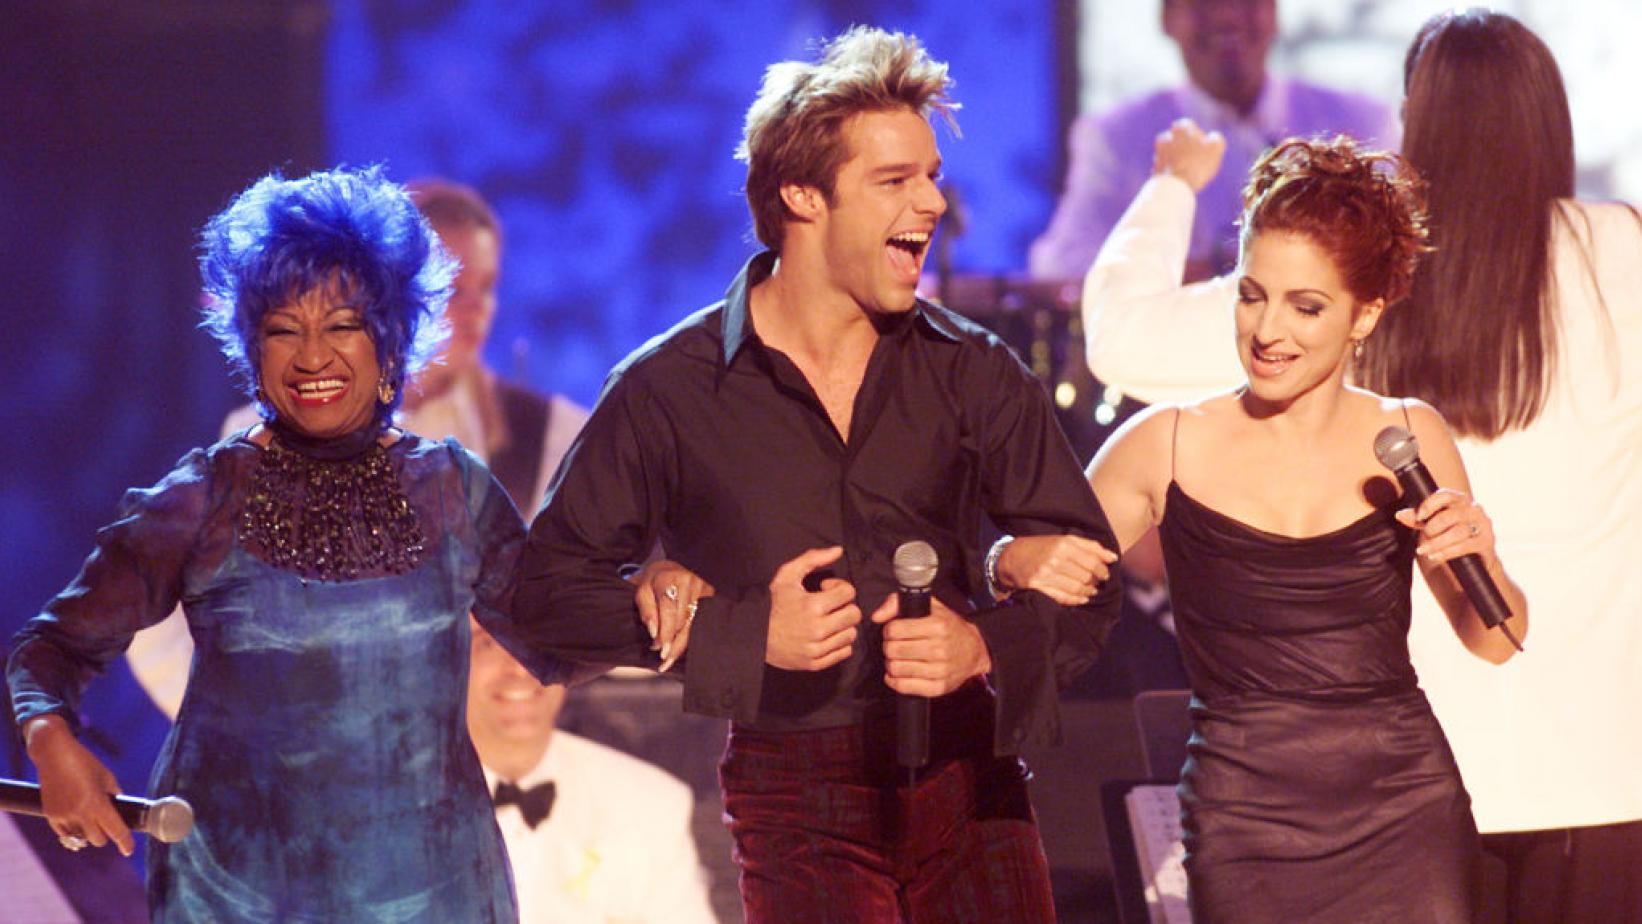 Celia Cruz, Ricky Martin & Gloria Estefan at the 2000 Latin GRAMMYs